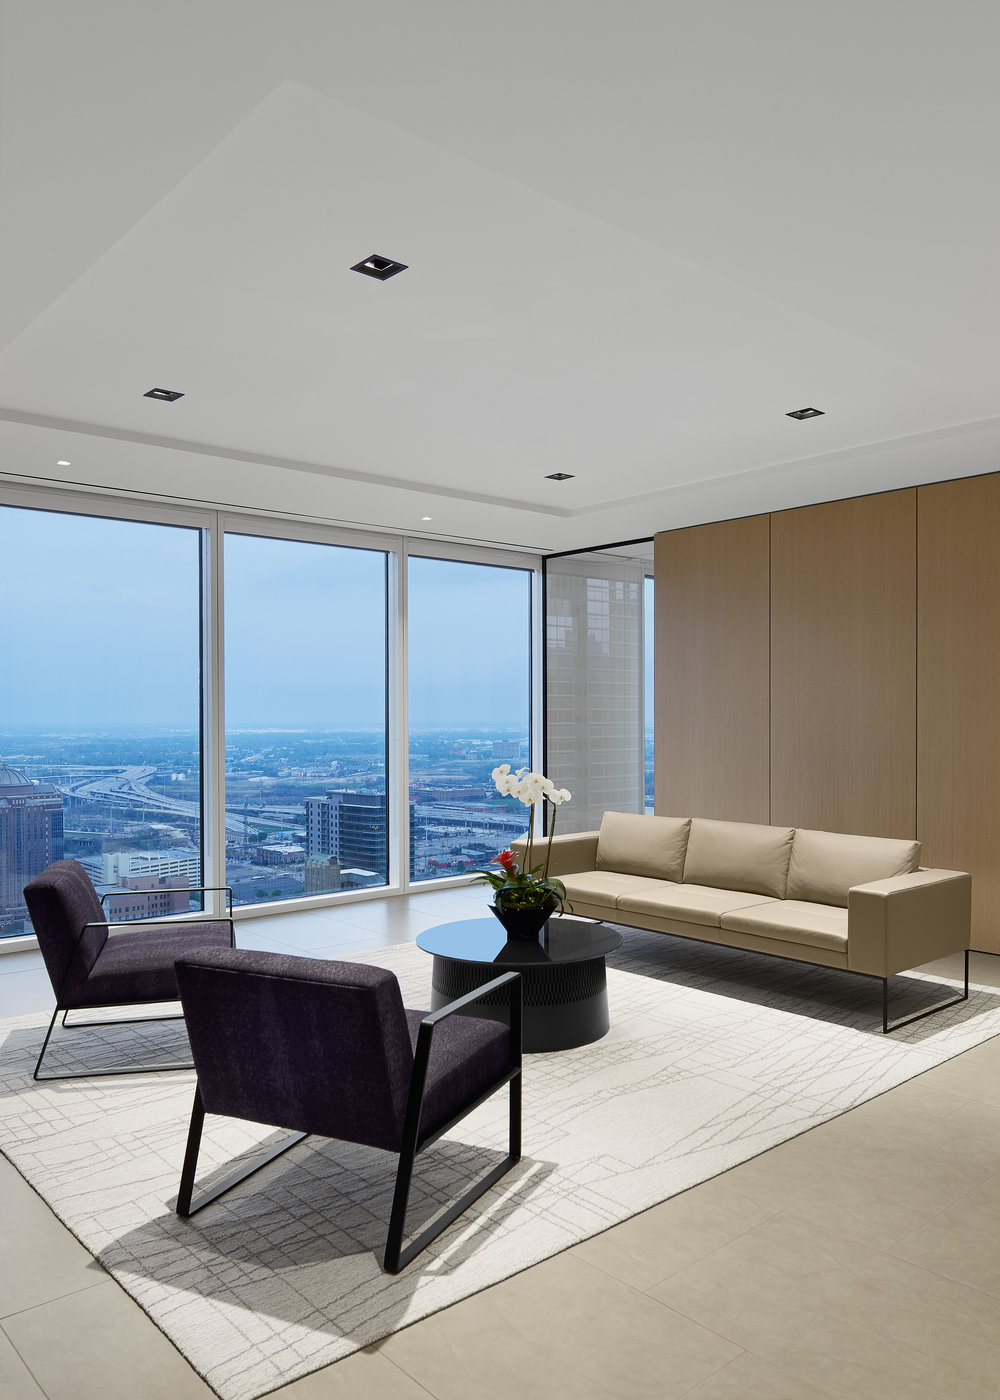 1013-Sooner Pipe Houston by Kirksey Architecture Photos by Jonathan Dean-Reception Dusk.jpg